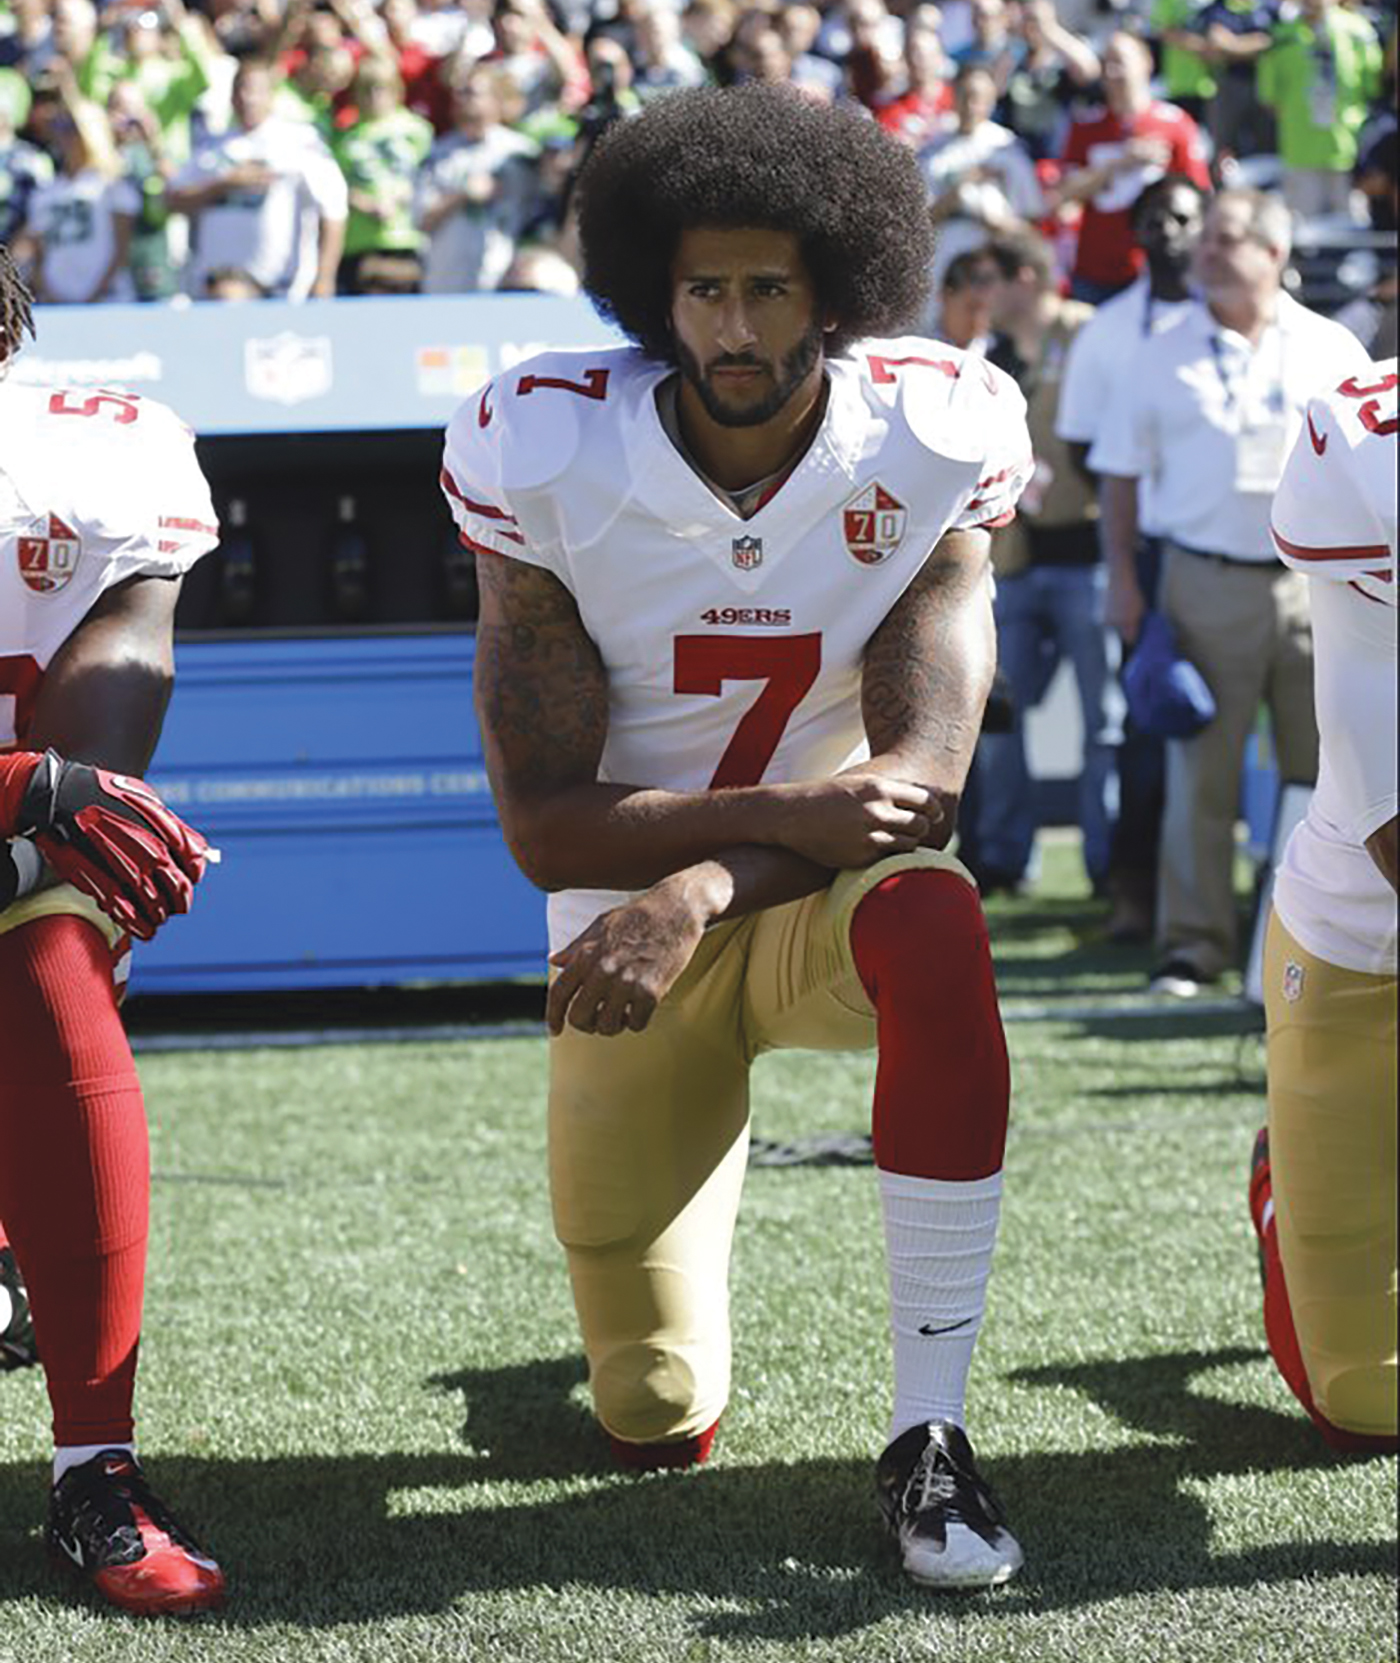 """FILE- In this Sept. 25, 2016, file photo, San Francisco 49ers' Colin Kaepernick kneels during the national anthem before an NFL football game against the Seattle Seahawks, in Seattle. Kaepernick has a new deal with Nike, even though the NFL does not want him. Kaepernick's attorney, Mark Geragos, made the announcement on Twitter, calling the former 49ers quarterback an """"All American Icon"""" and crediting attorney Ben Meiselas for getting the deal done. (AP Photo/Ted S. Warren, File)"""